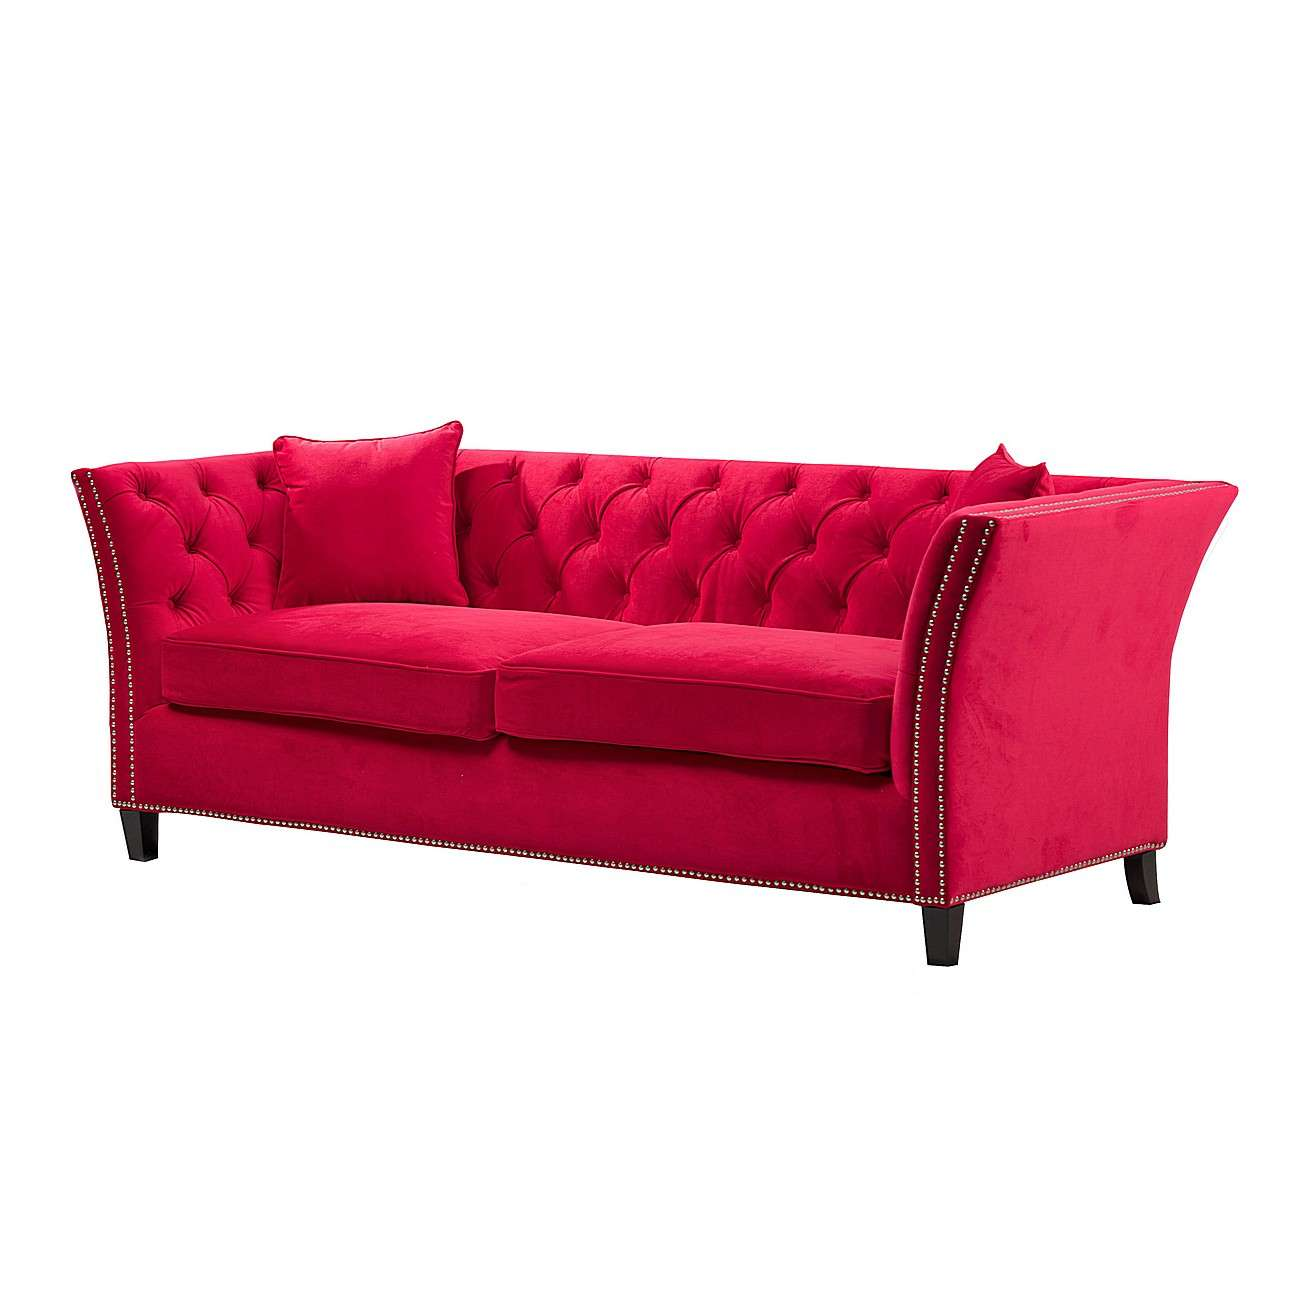 chesterfield sofa modern red leather sectional sale velvet raspberry 3 os dekoria